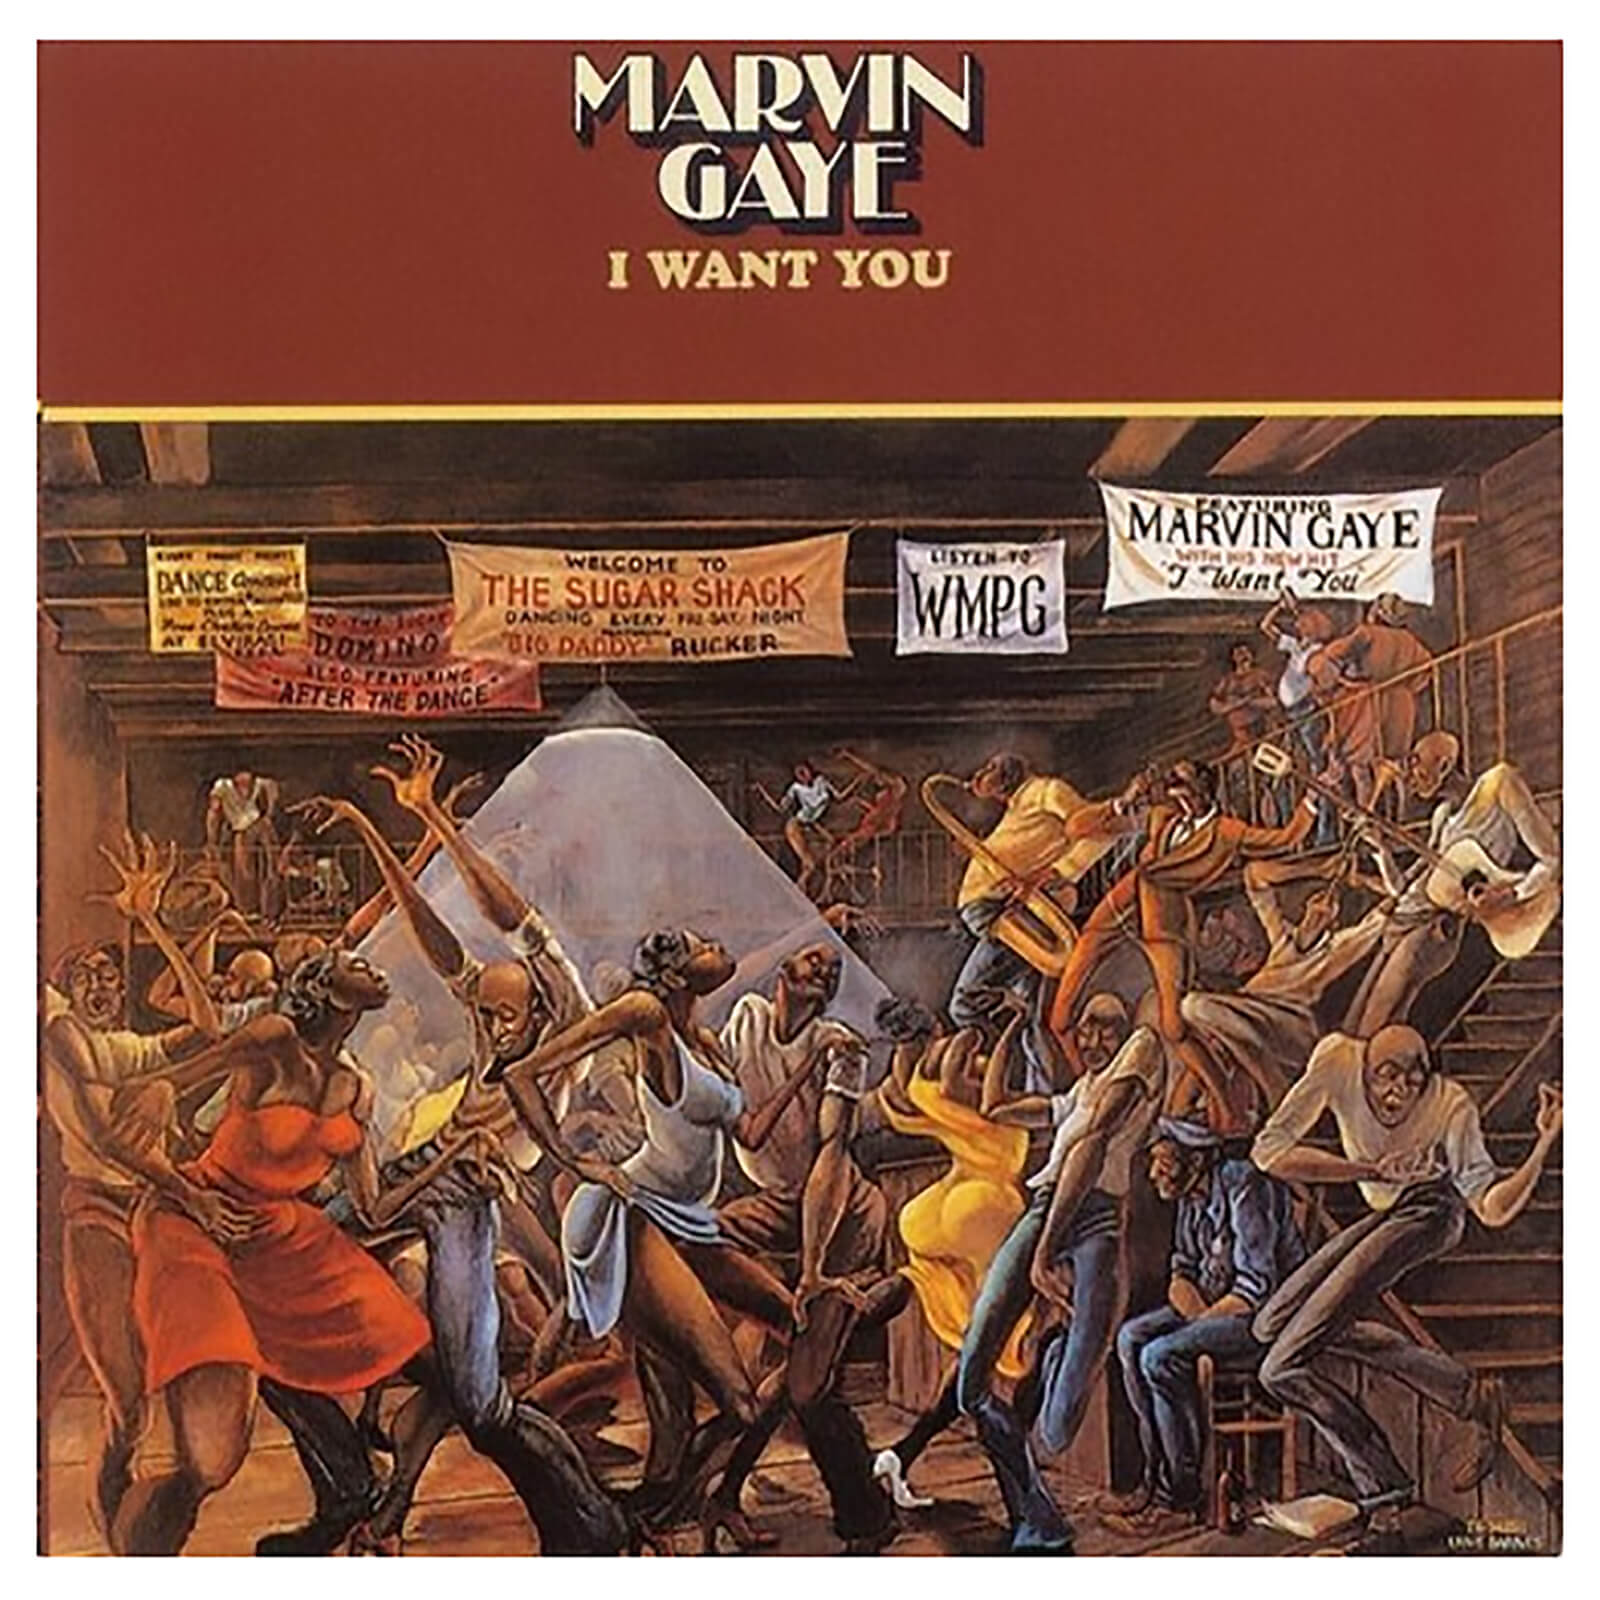 Marvin Gaye - I Want You - Vinyl